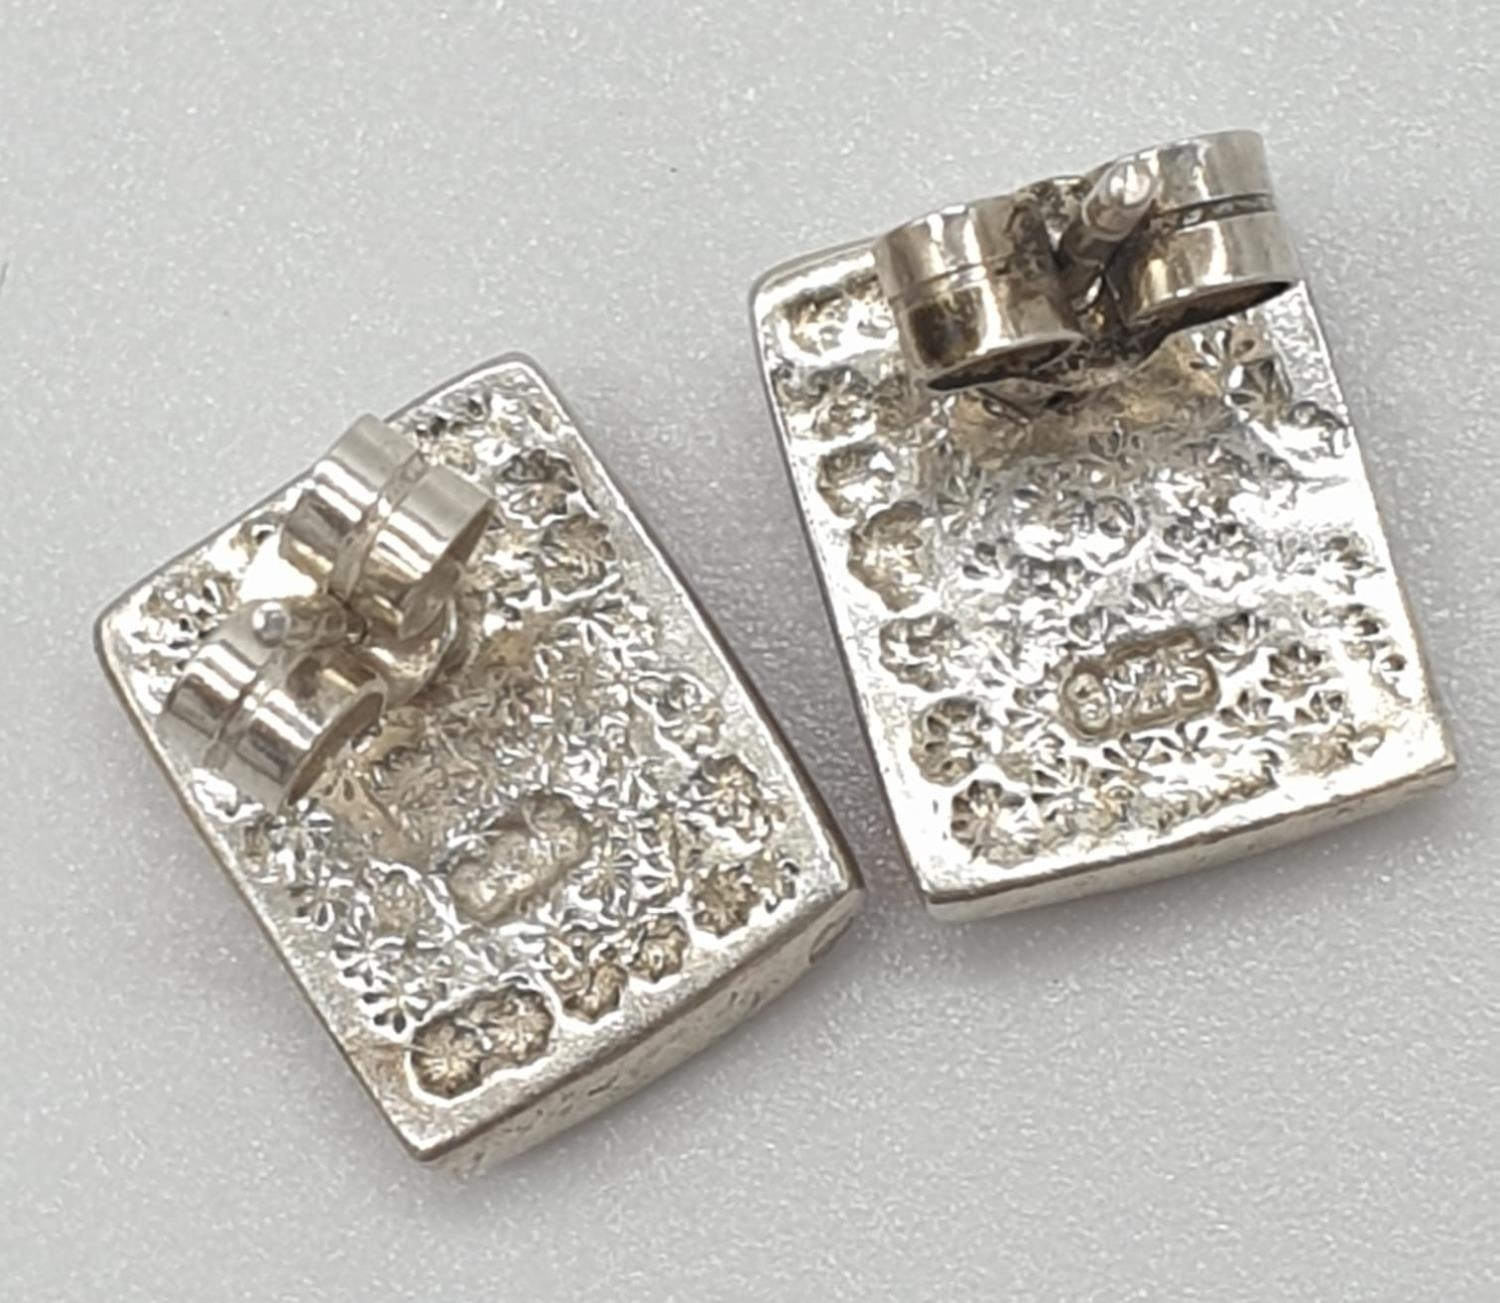 Silver stone set EARRINGS in rectangular form having pale pink mother of pearl brickwork pattern. - Image 3 of 3